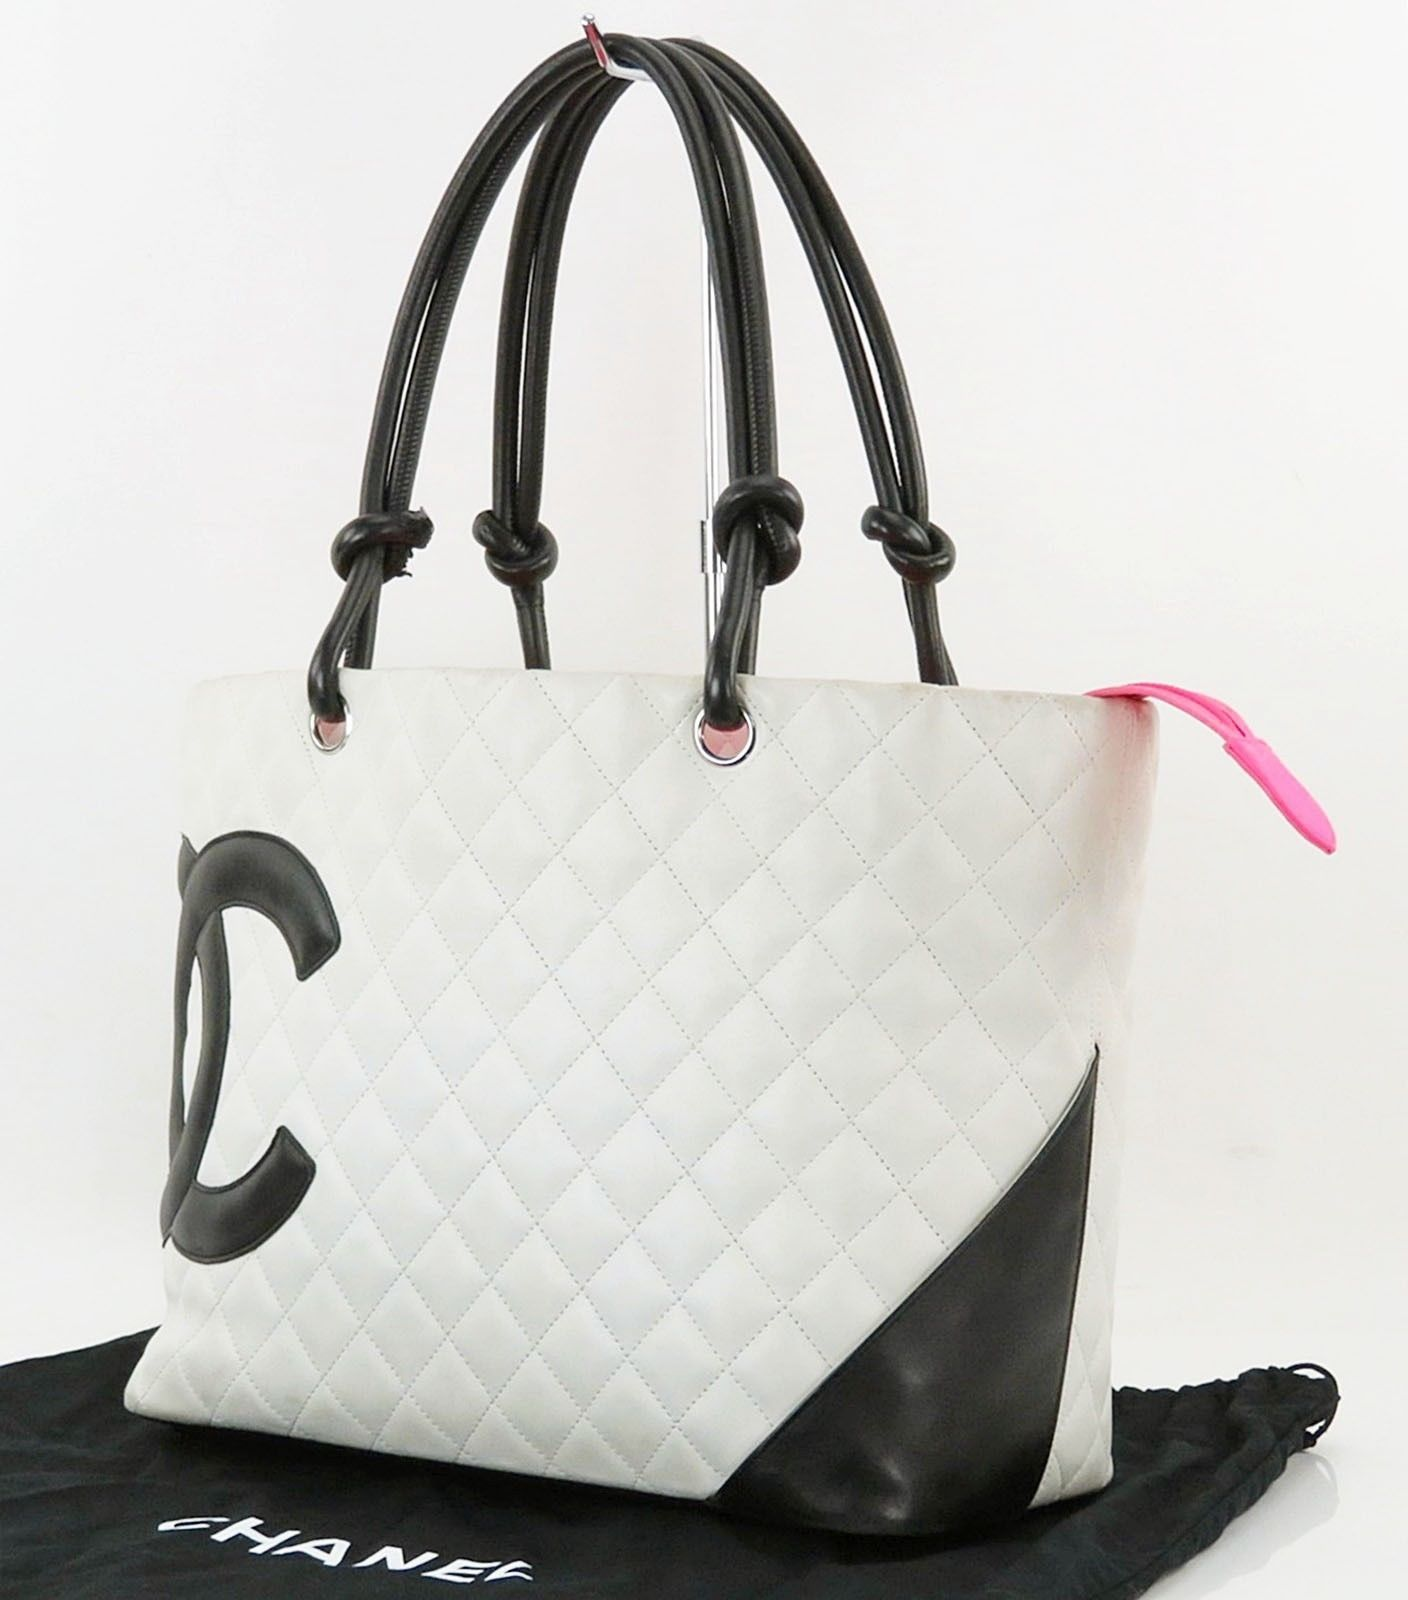 d2f432ac59a7 Authentic CHANEL Cambon Line CC White Quilted Leather Tote Bag Purse  28184